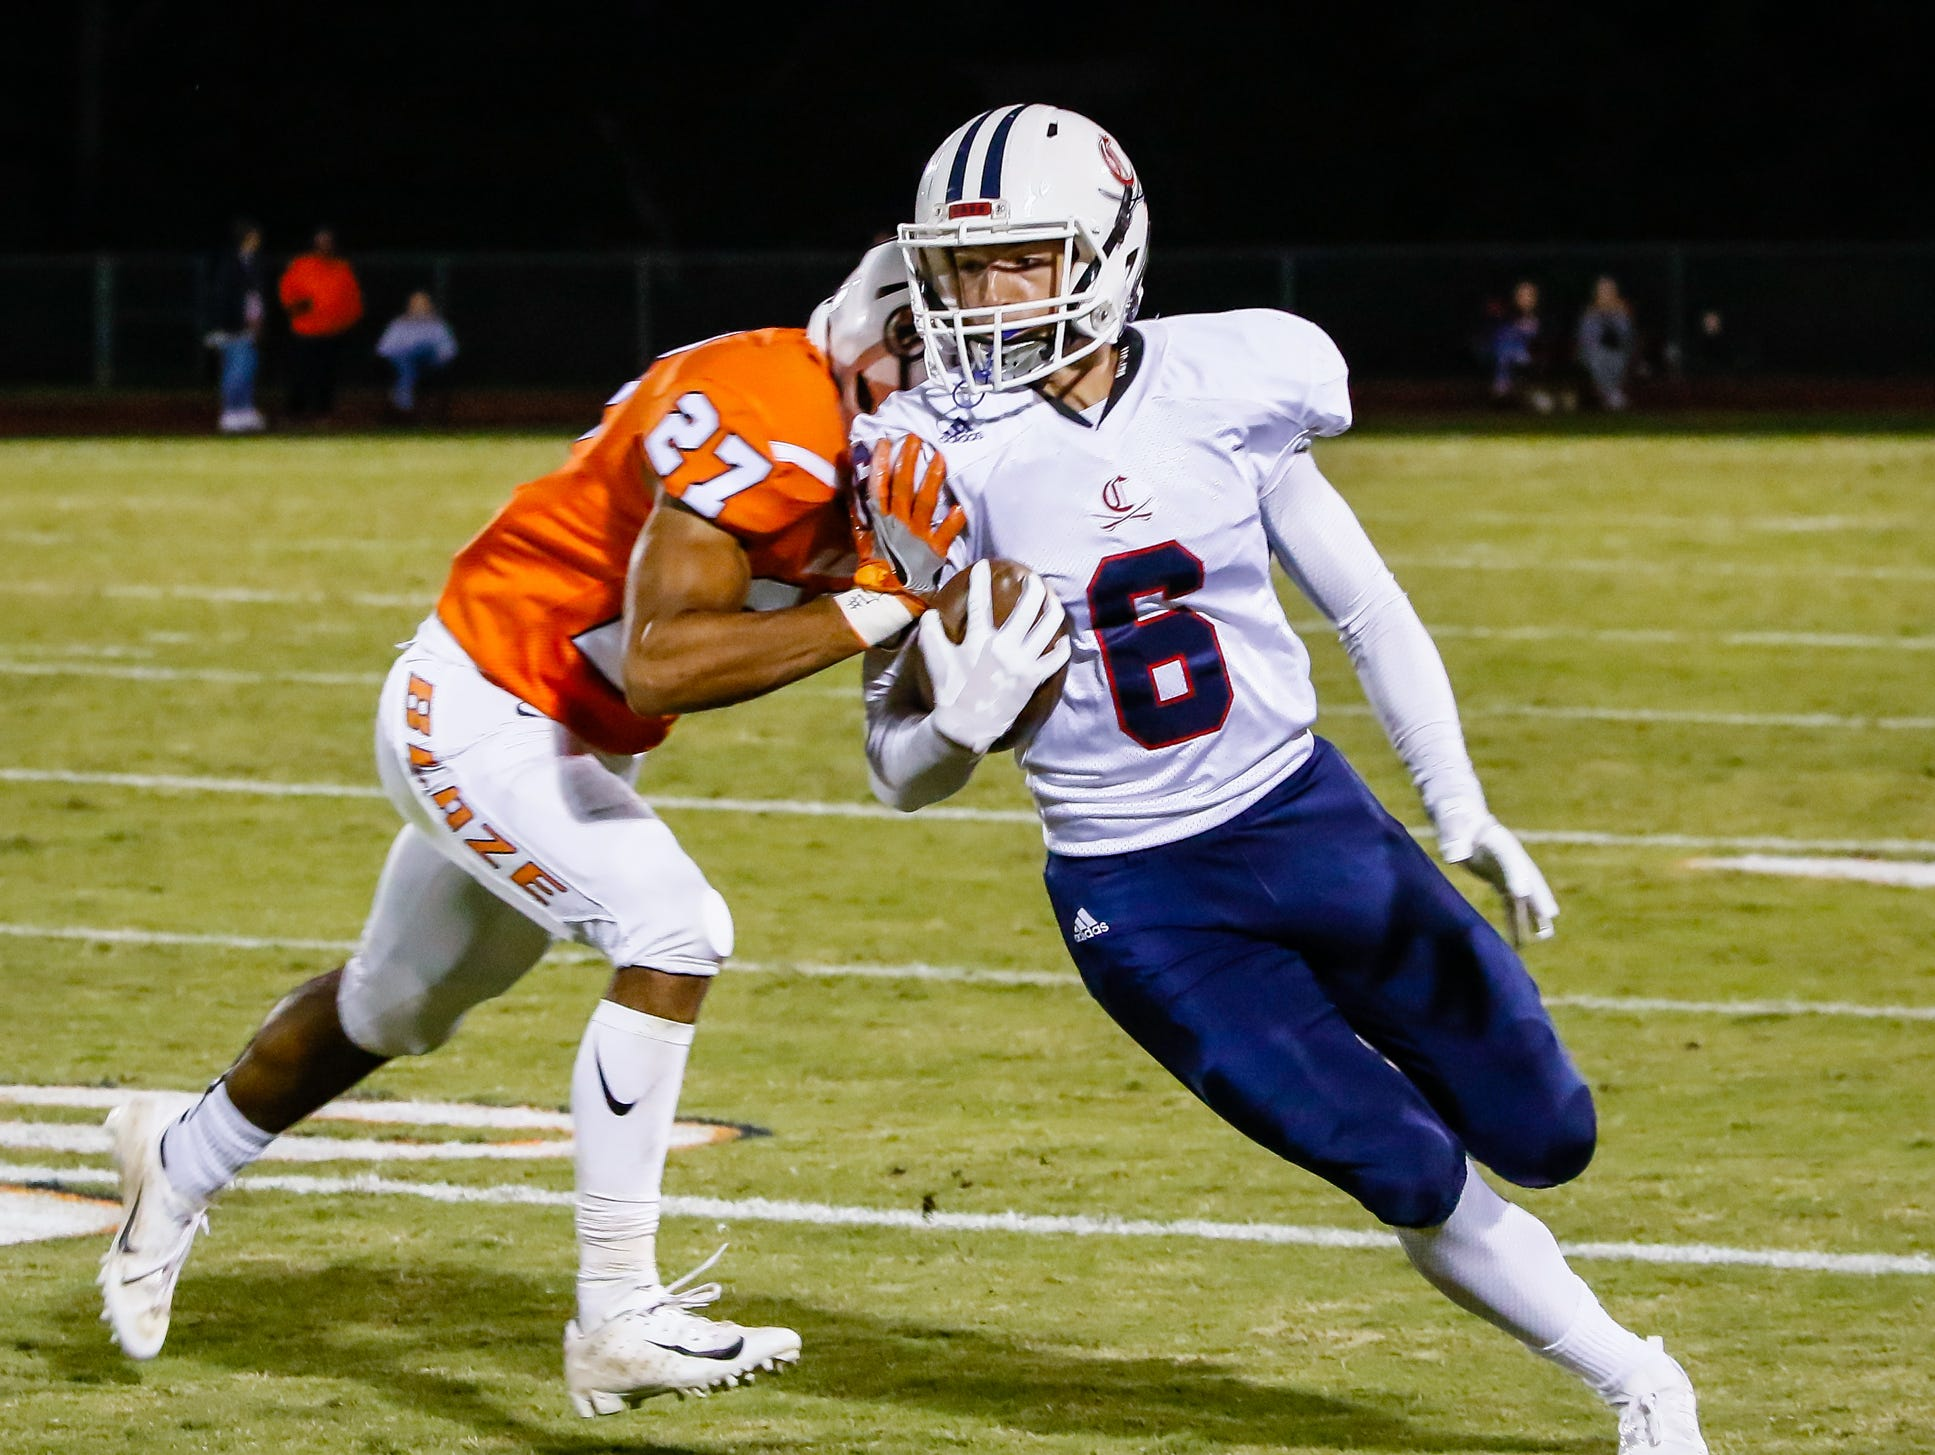 Owen Stockton pulls in a pass for Cookeville before being pushed out of bounds by Blackman's Jalen Brown.